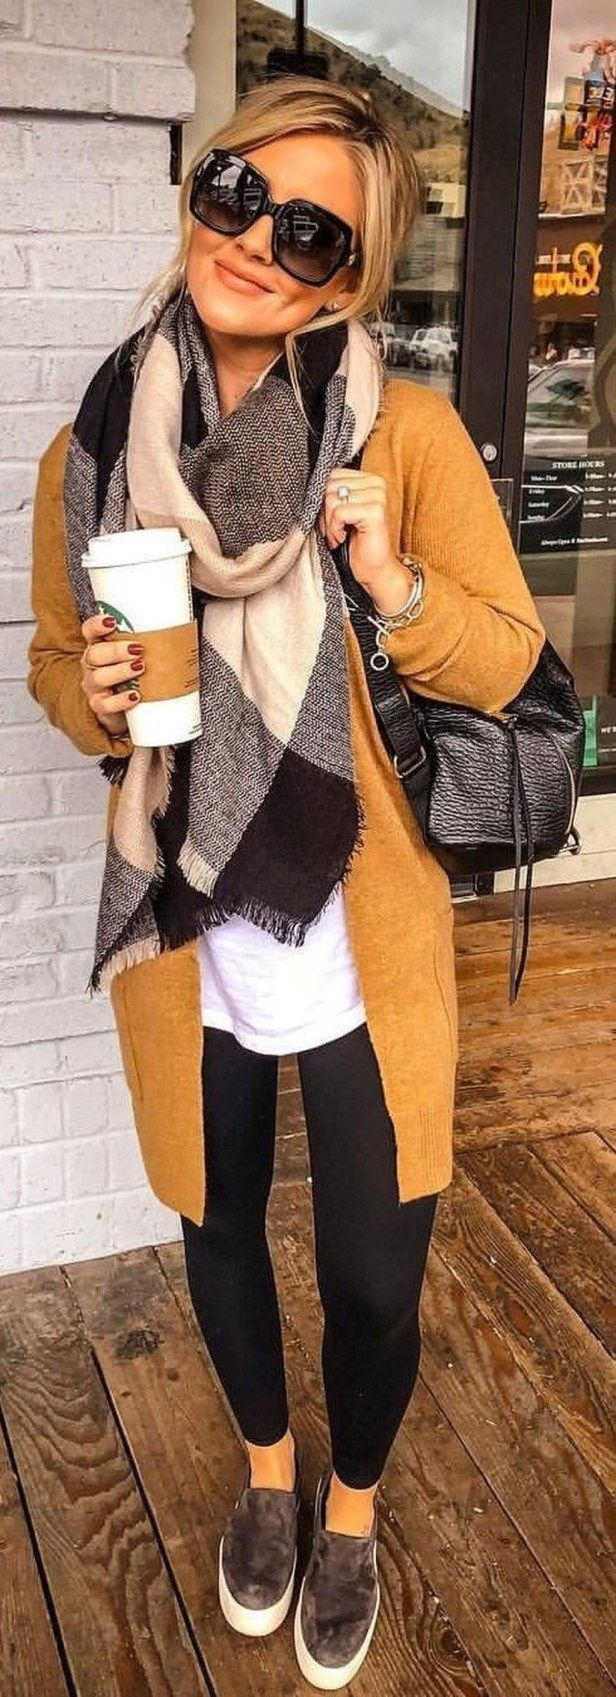 58 Trendy Business Casual Work Outfit Für Frauen #fashion #women Outfit #women Ou 58 Trendy Business Casual Work Outfit für Frauen #Fashion #Women Outfit #Women Ou Woman Dresses woman getting dressed